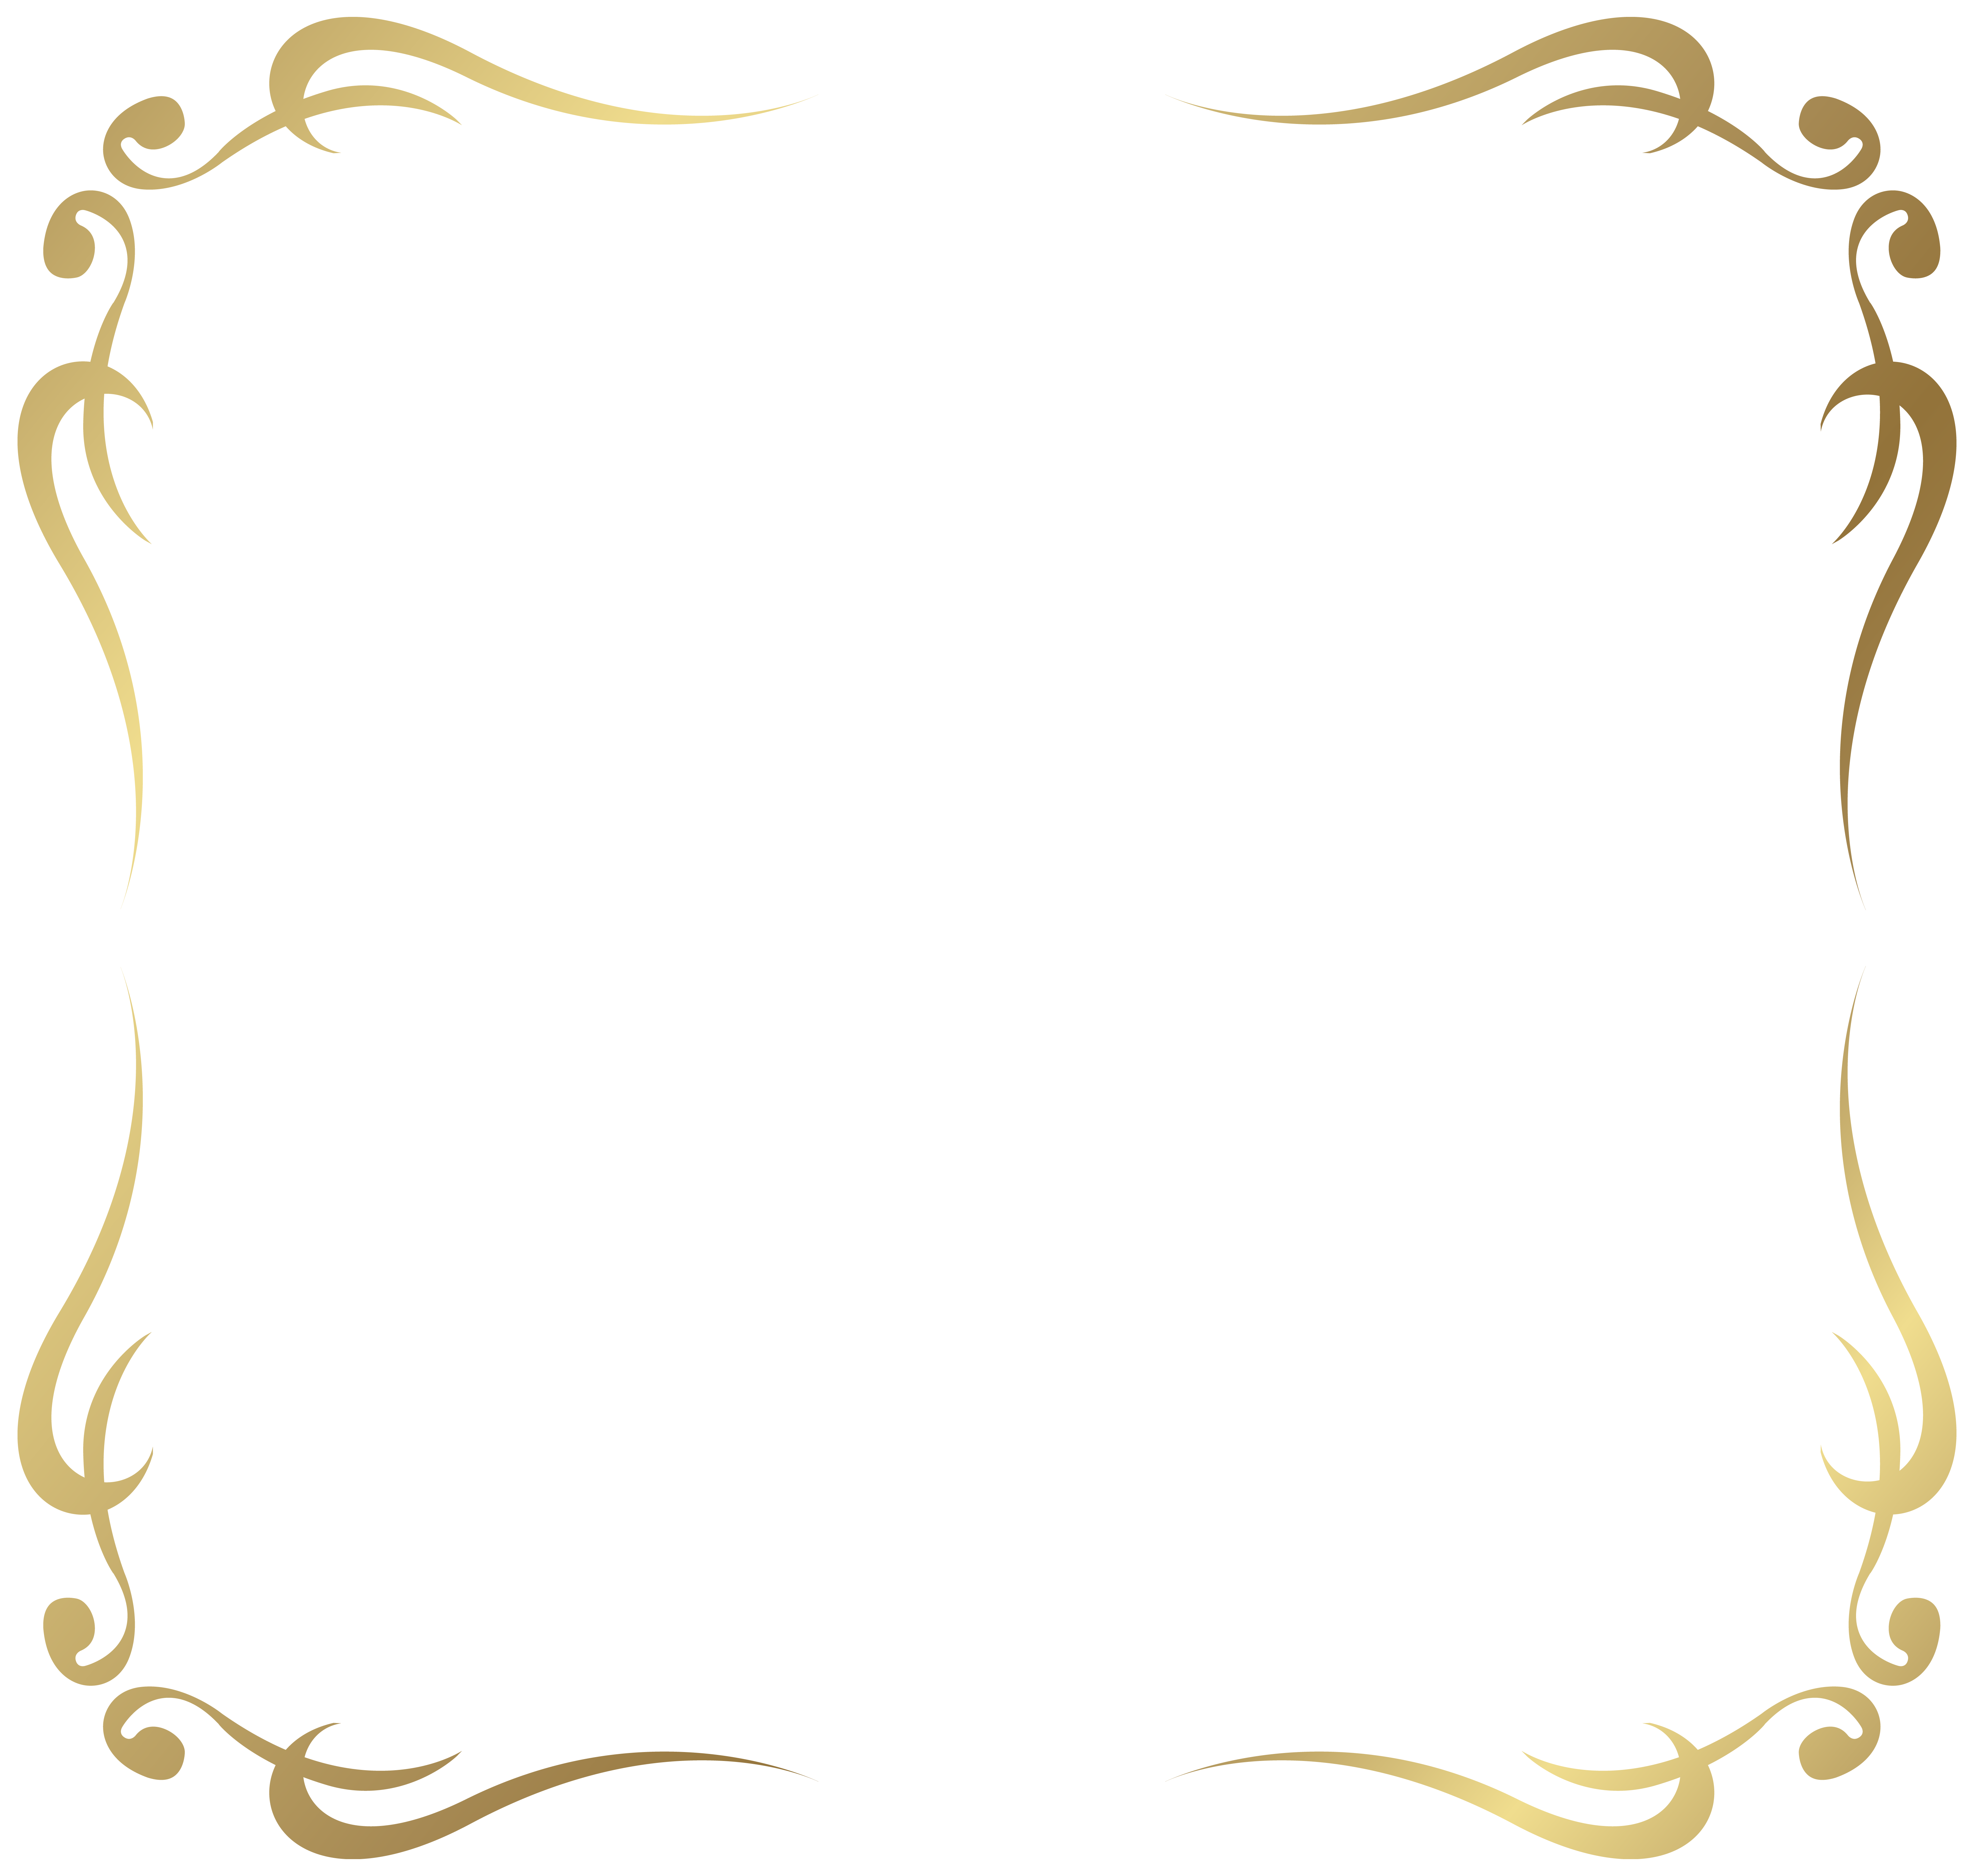 Shaped Decorative Border Vector